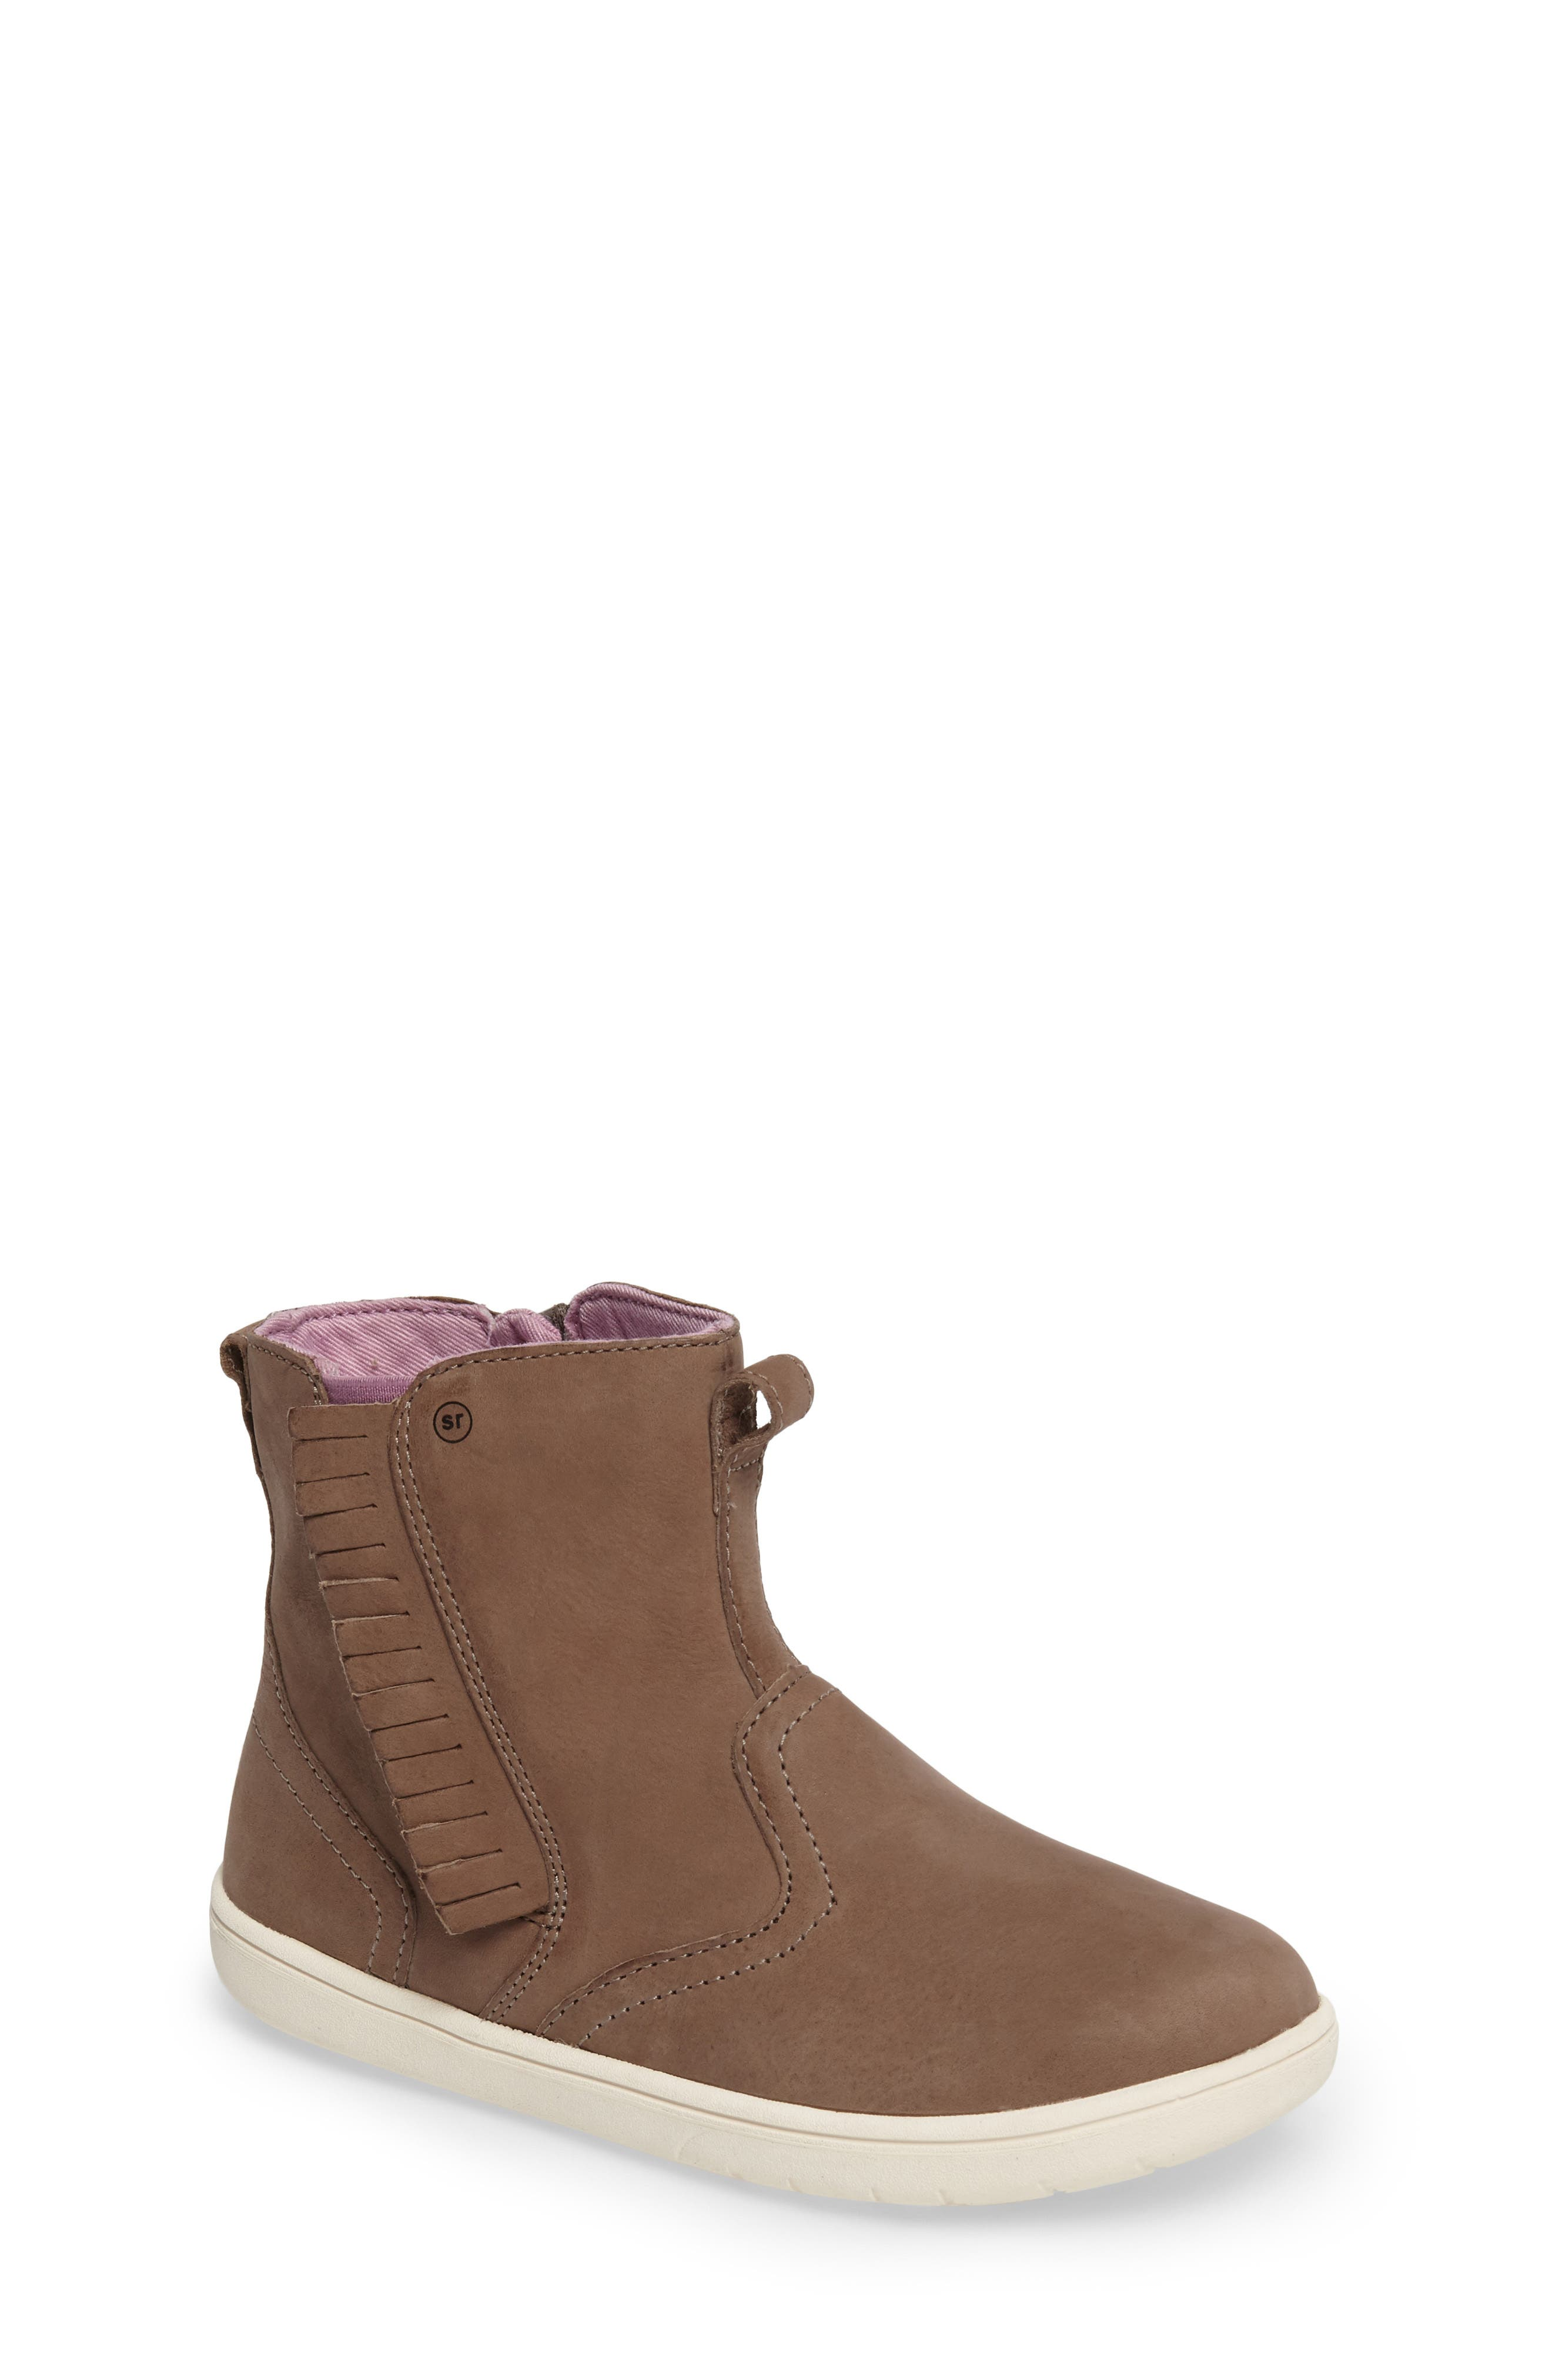 SRtech<sup>™</sup> Maxine Fringed Bootie,                             Main thumbnail 1, color,